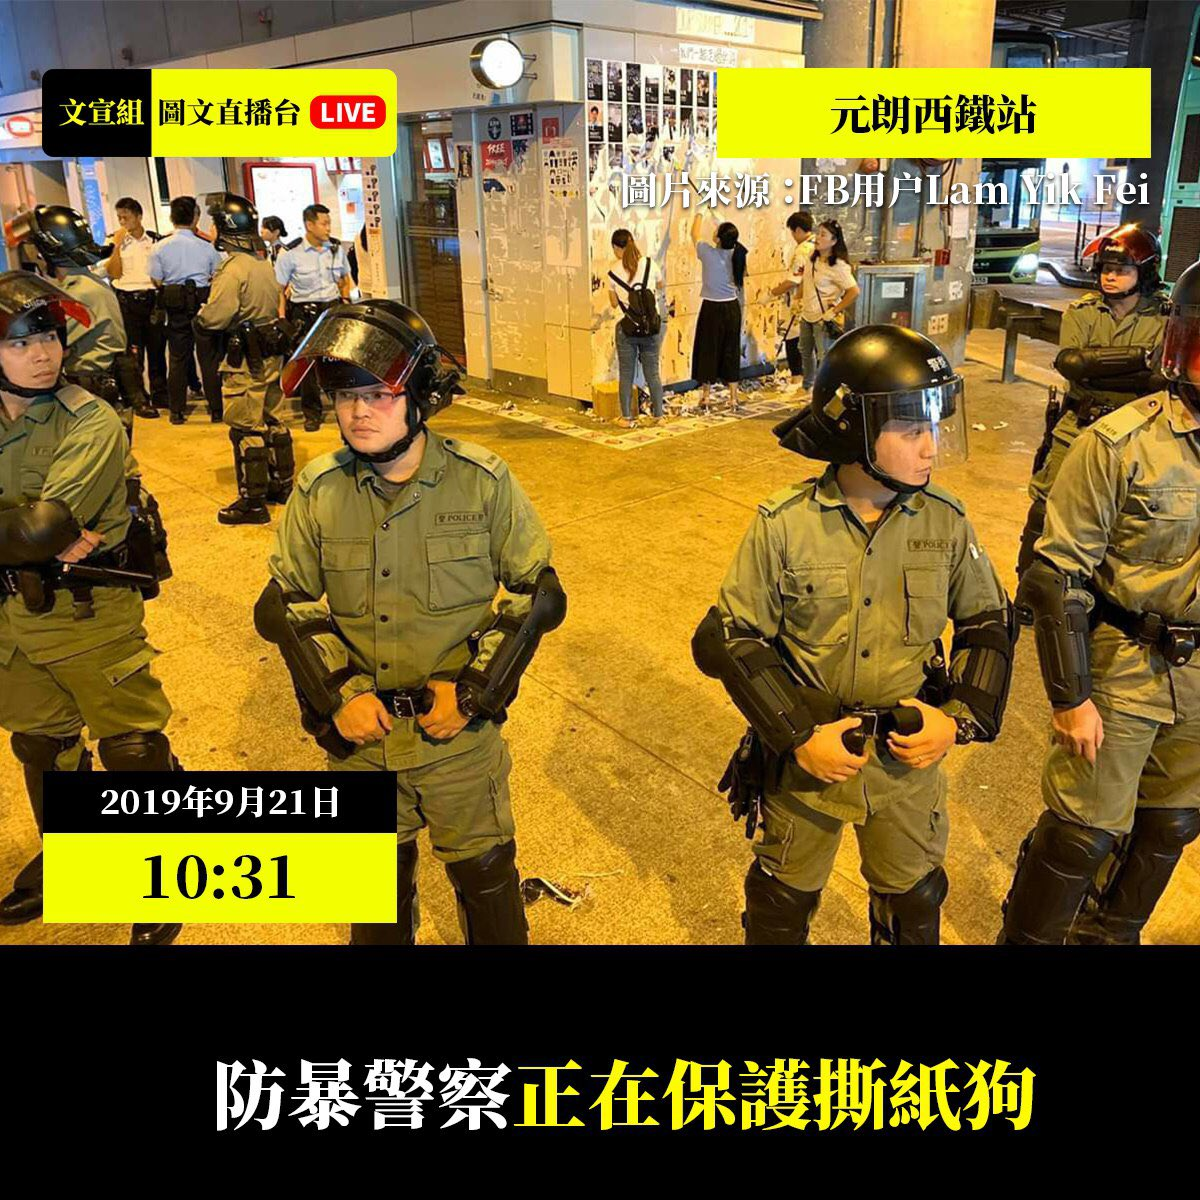 """Hong Kong riot polices were sent to protect ppl """"cleaning"""" Lennon wall. Yeah well spend of taxes we paid.#HongKongProtests"""